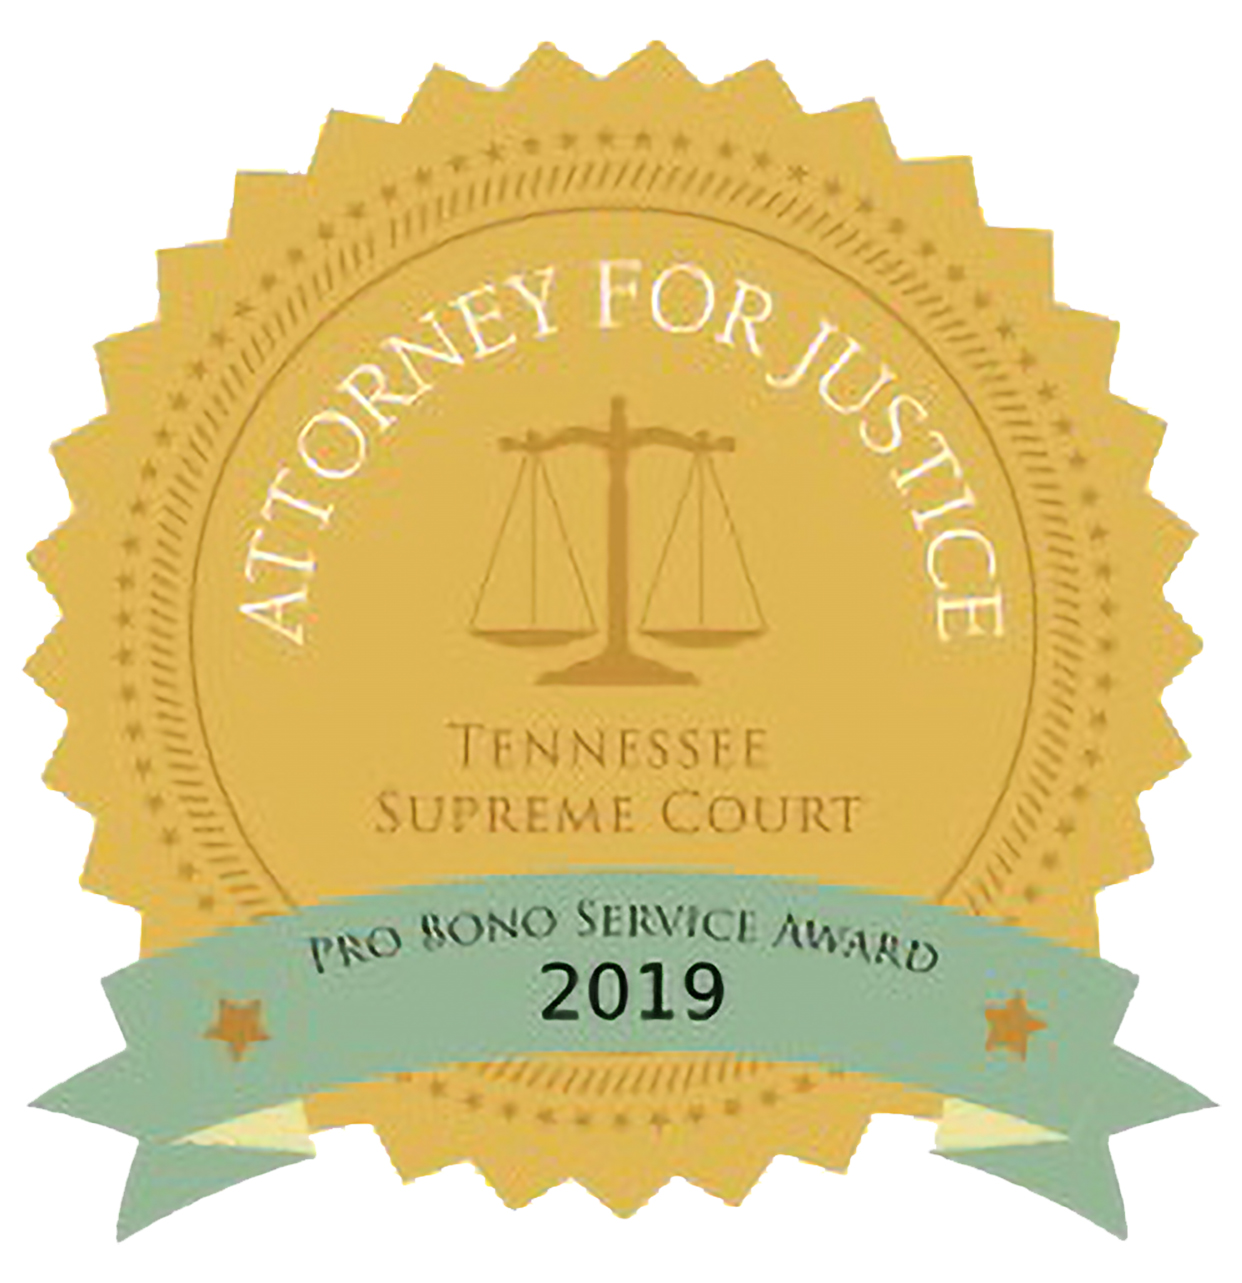 Attorney for Justice 2019